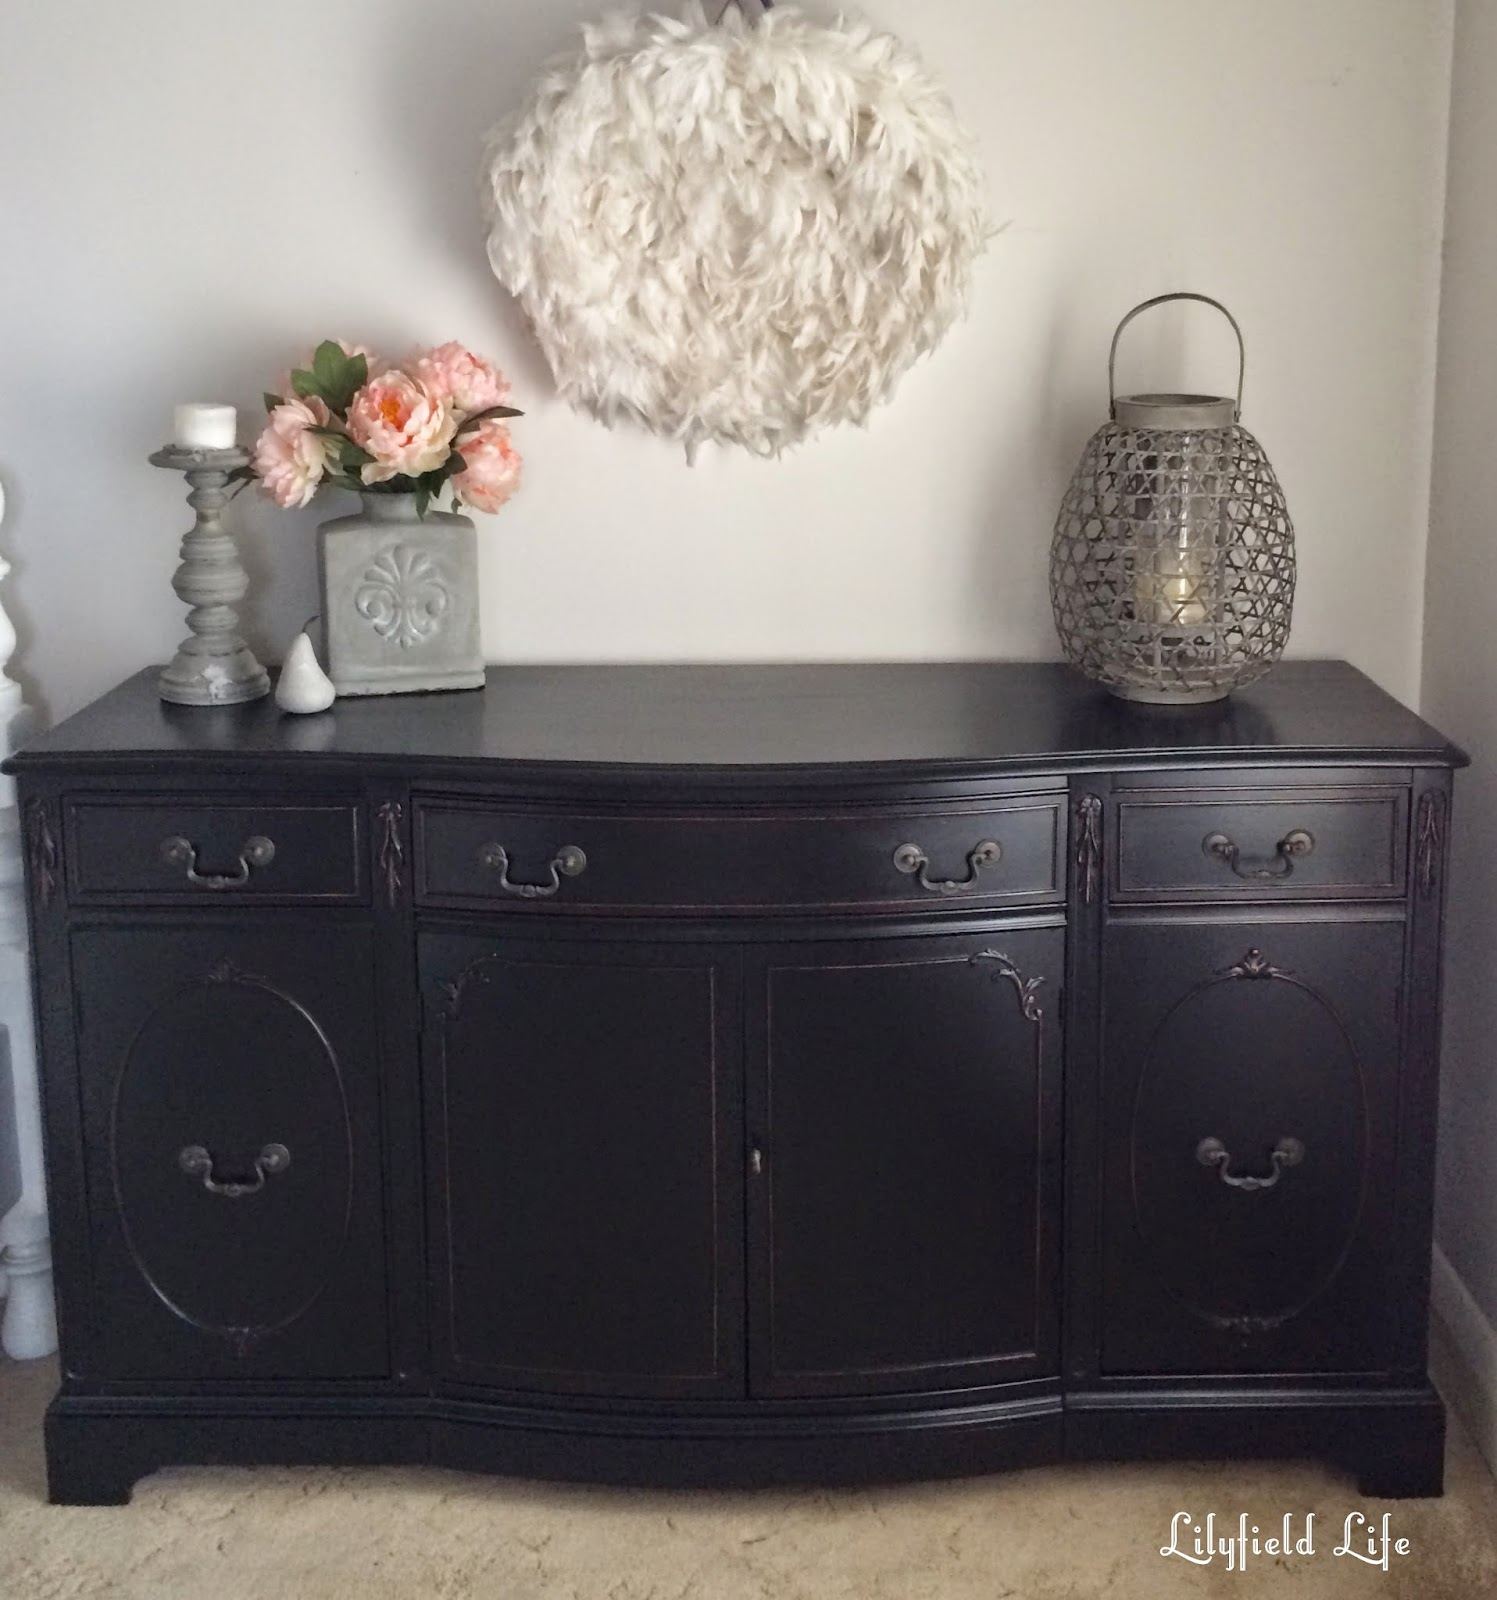 Lilyfield life how to paint furniture black like a boss for Dark grey furniture paint